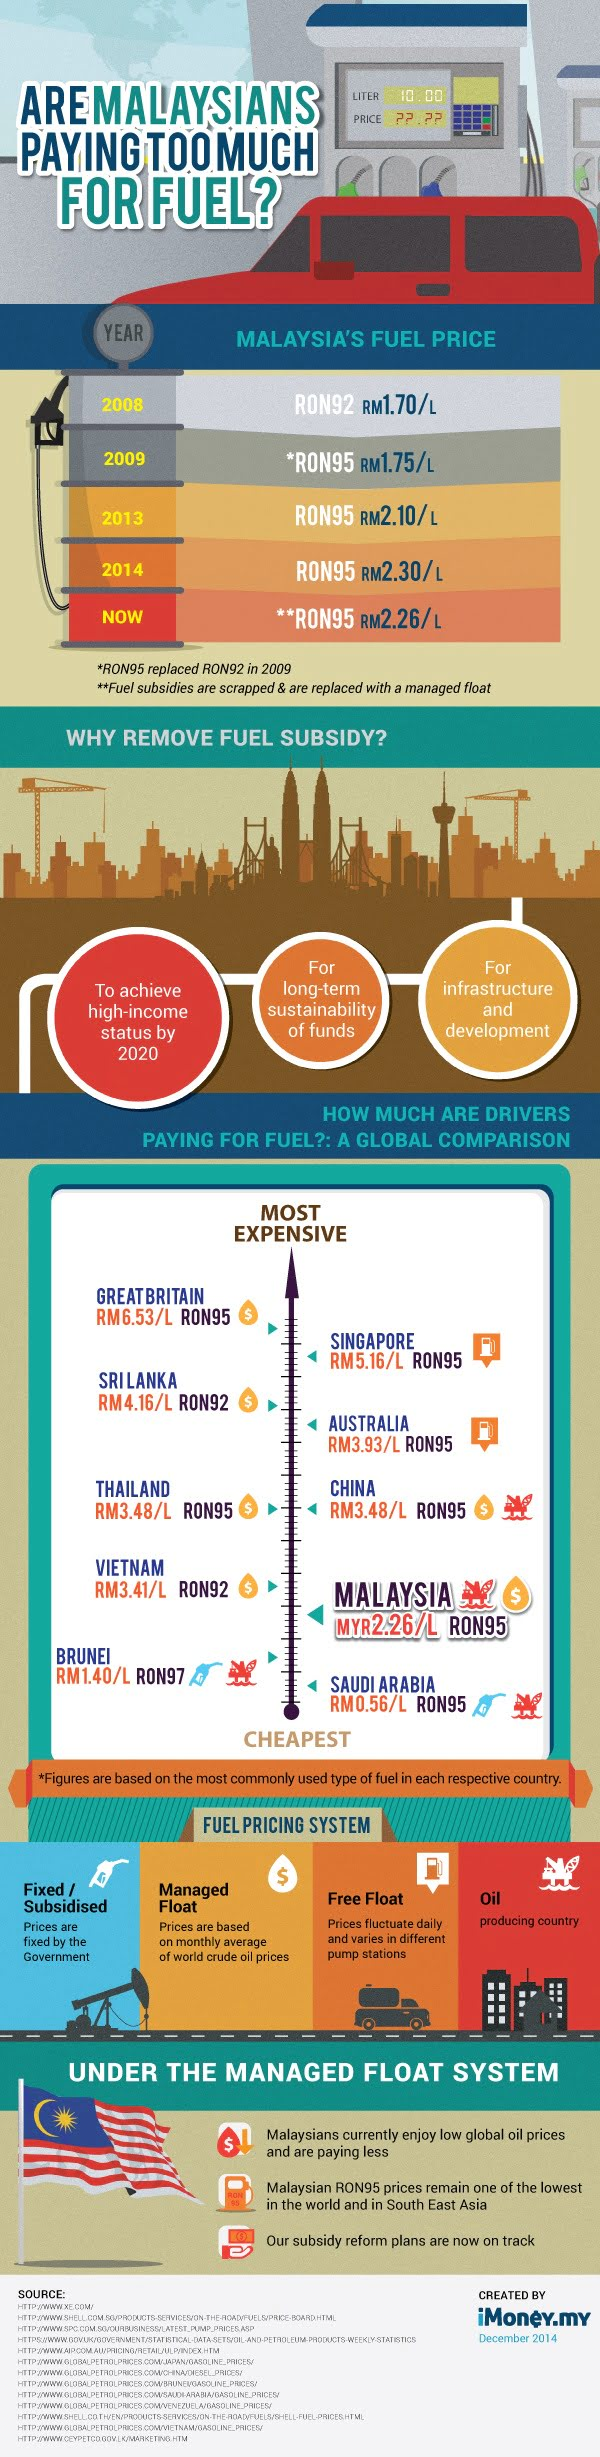 BEST FB KL: Malaysian Petrol Price Compared To Other ...